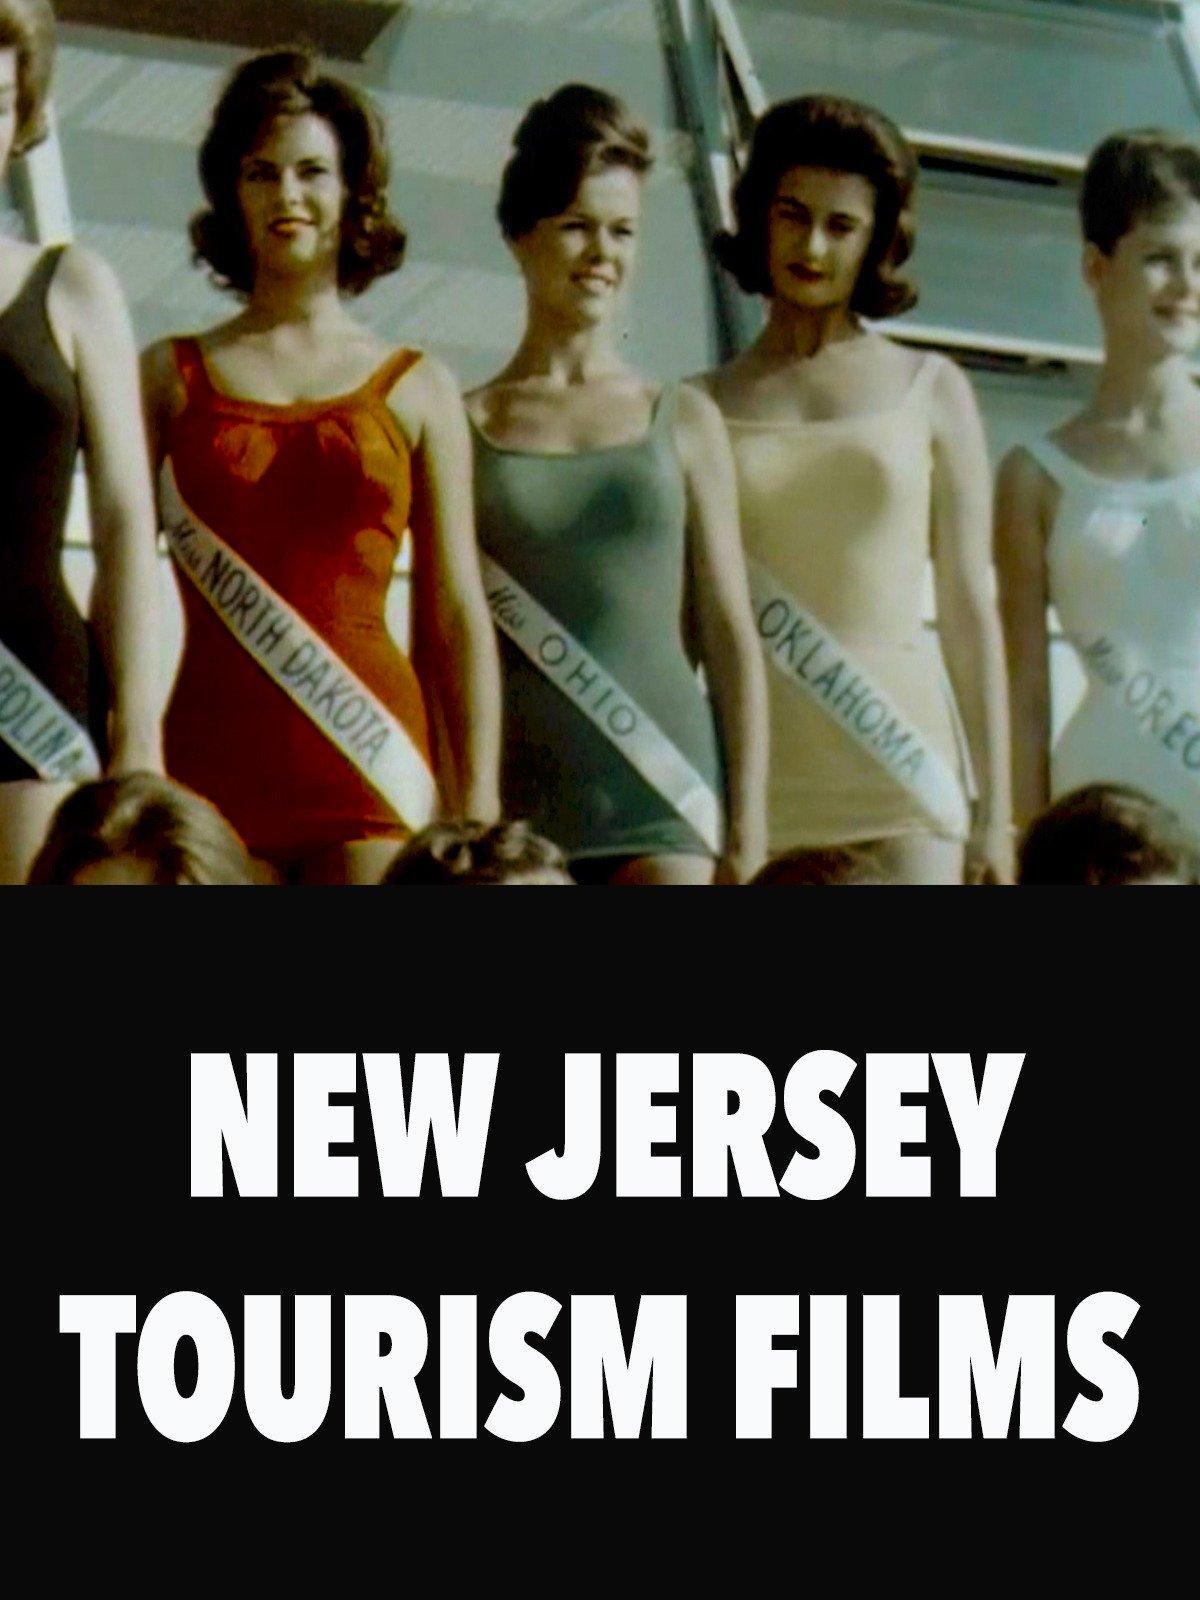 New Jersey Tourism Films